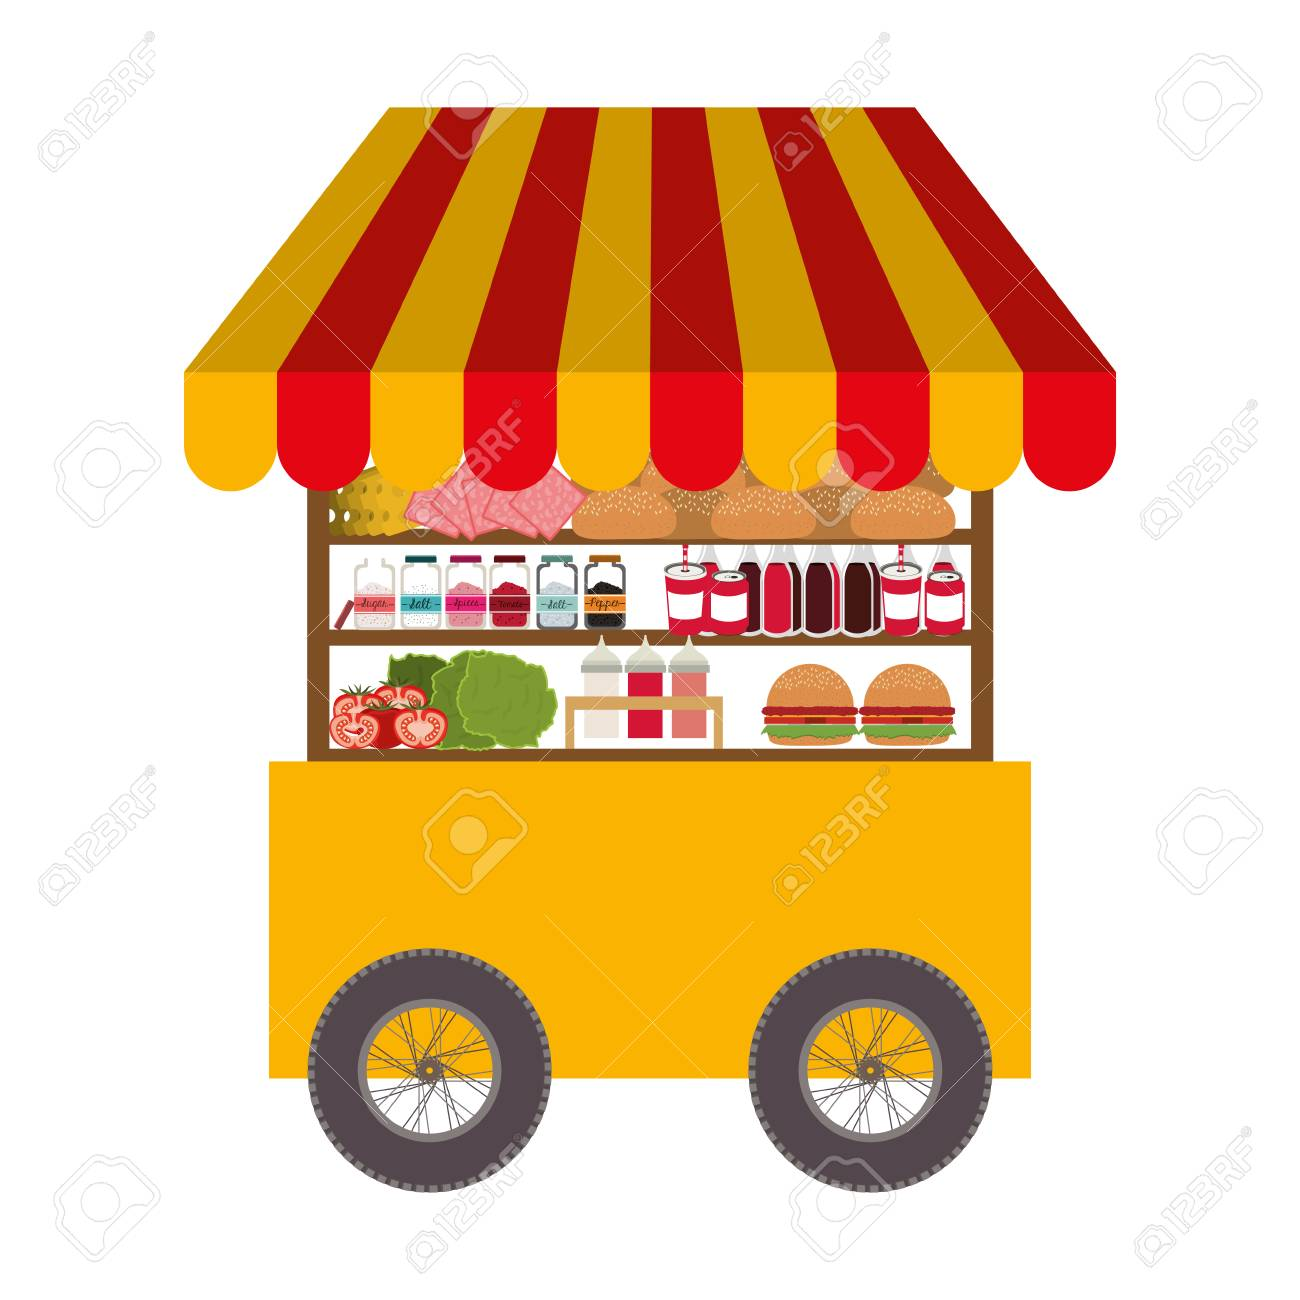 fast food cart icon over white background. street business design.